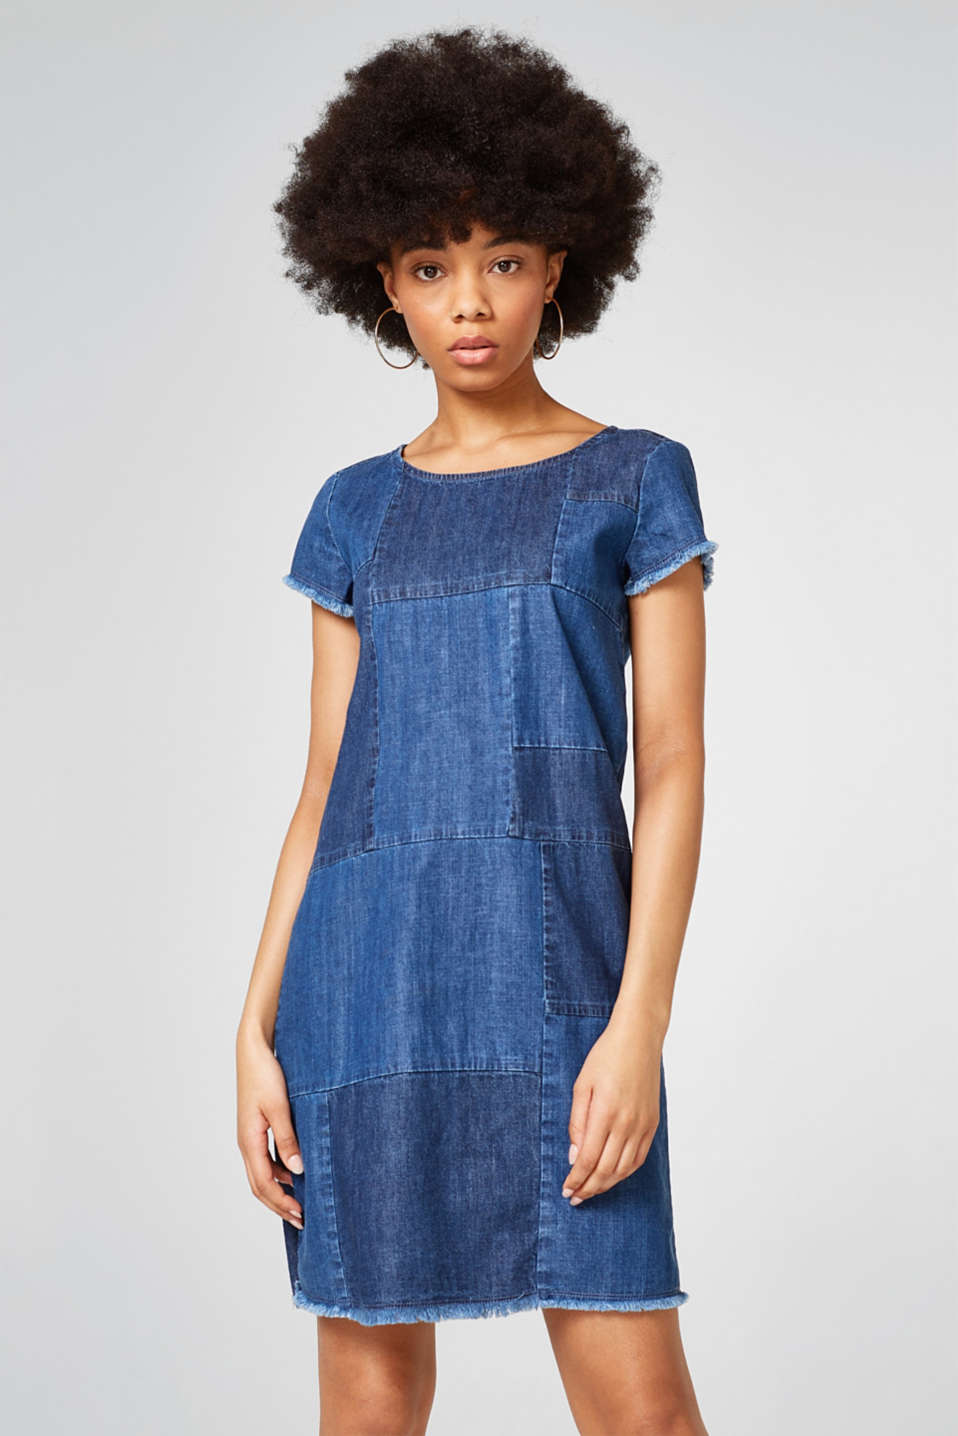 Esprit - Trendy denim dress in a patchwork look